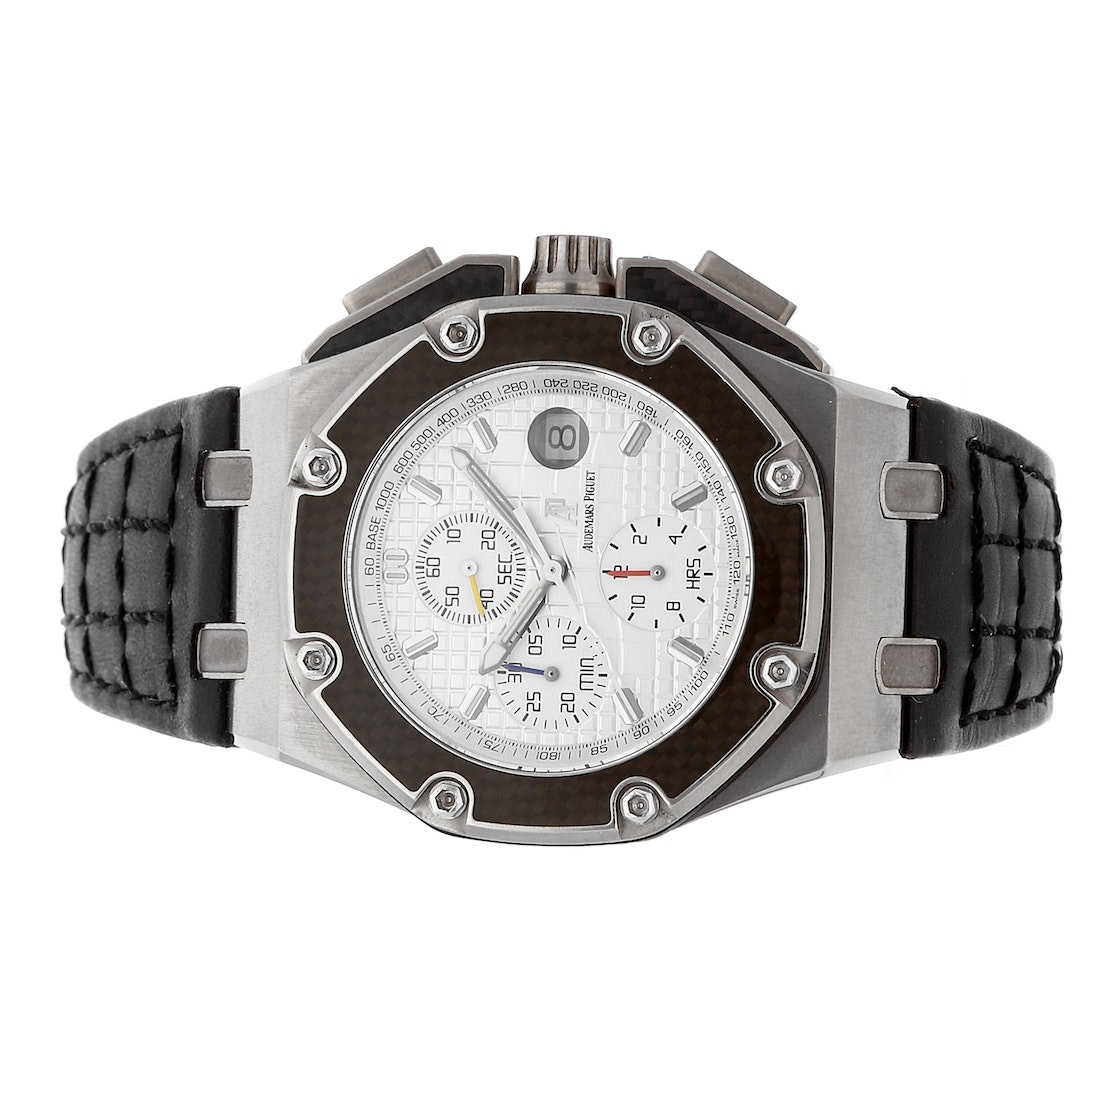 "Audemars Piguet Royal Oak Offshore Chronograph ""Juan Pablo Montoya"" Limited Edition 26030IO.OO.D001IN.001"